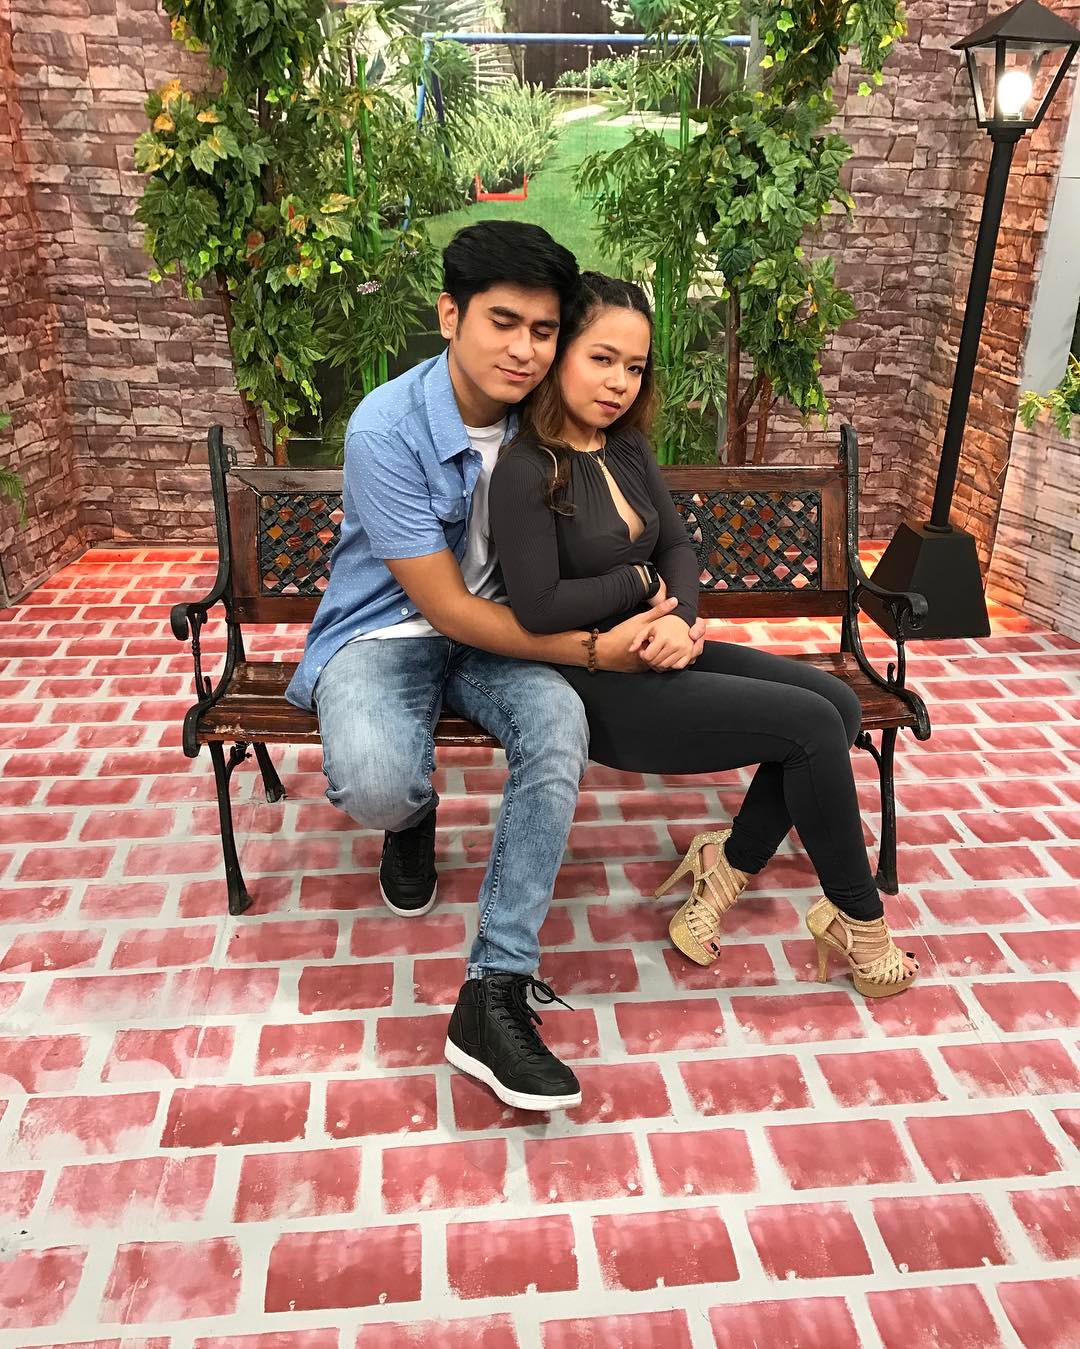 Who's dating who? Goin' Bulilit Graduates and their significant others